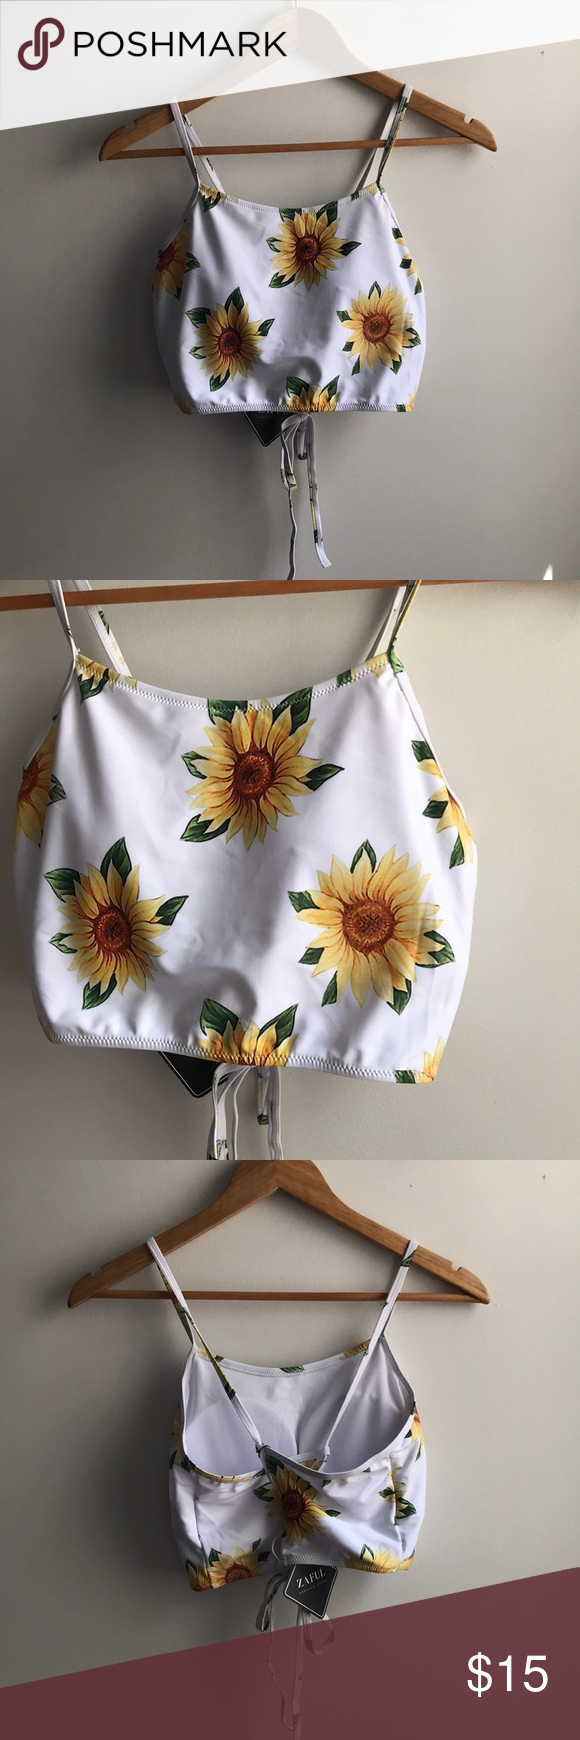 NWT Zaful white yellow sunflower tankini swim top Brand new – I have the bottoms…